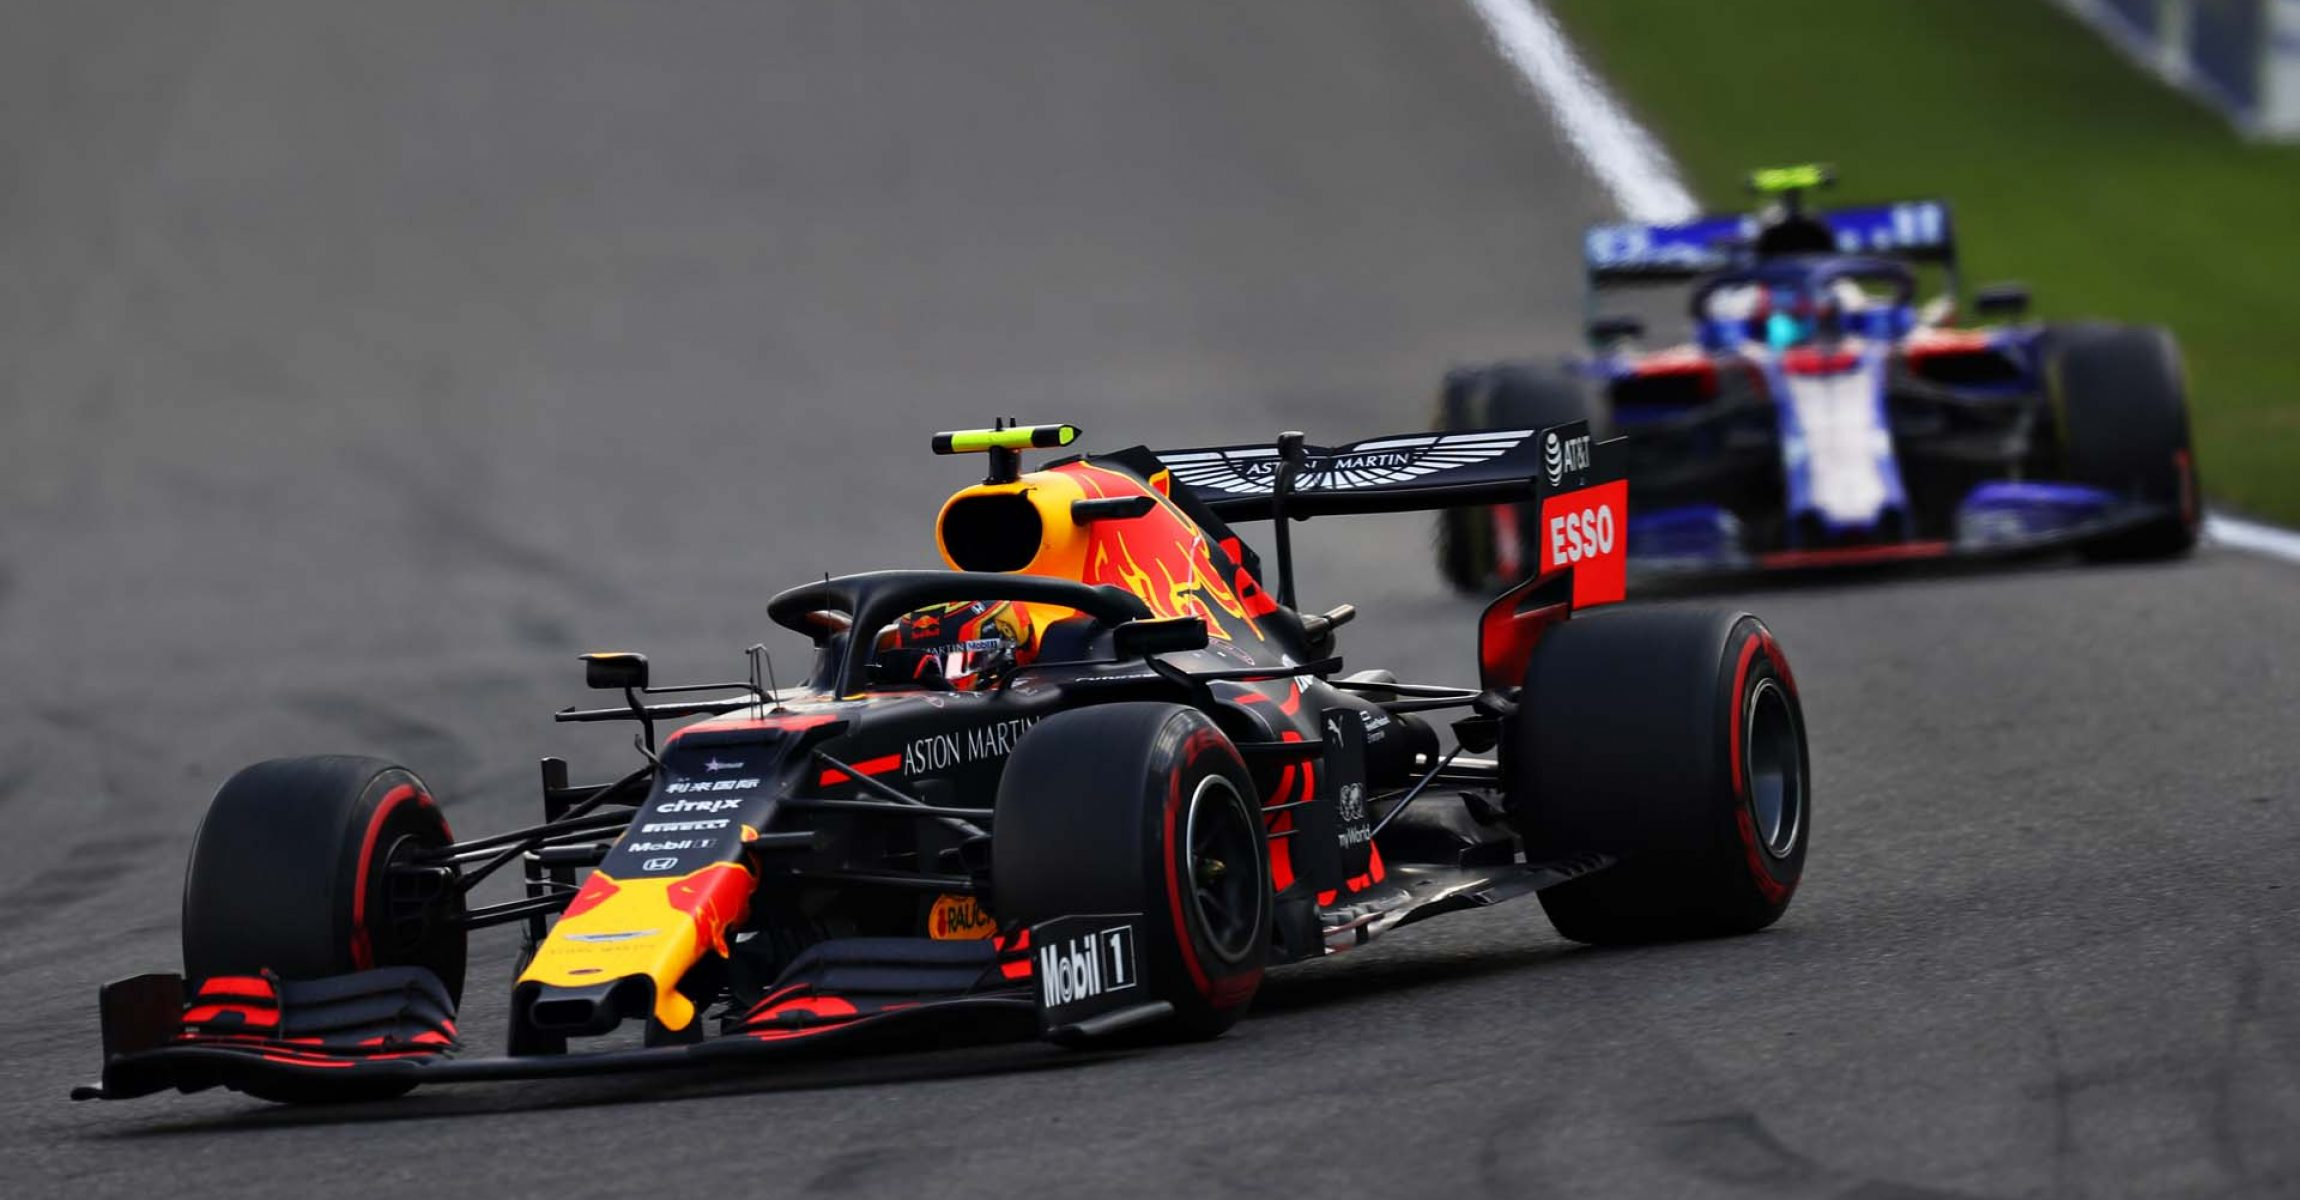 SPA, BELGIUM - SEPTEMBER 01: Alexander Albon of Thailand driving the (23) Aston Martin Red Bull Racing RB15 leads Pierre Gasly of France driving the (10) Scuderia Toro Rosso STR14 Honda on track during the F1 Grand Prix of Belgium at Circuit de Spa-Francorchamps on September 01, 2019 in Spa, Belgium. (Photo by Mark Thompson/Getty Images) // Getty Images / Red Bull Content Pool // AP-21EJBRGRH2111 // Usage for editorial use only //